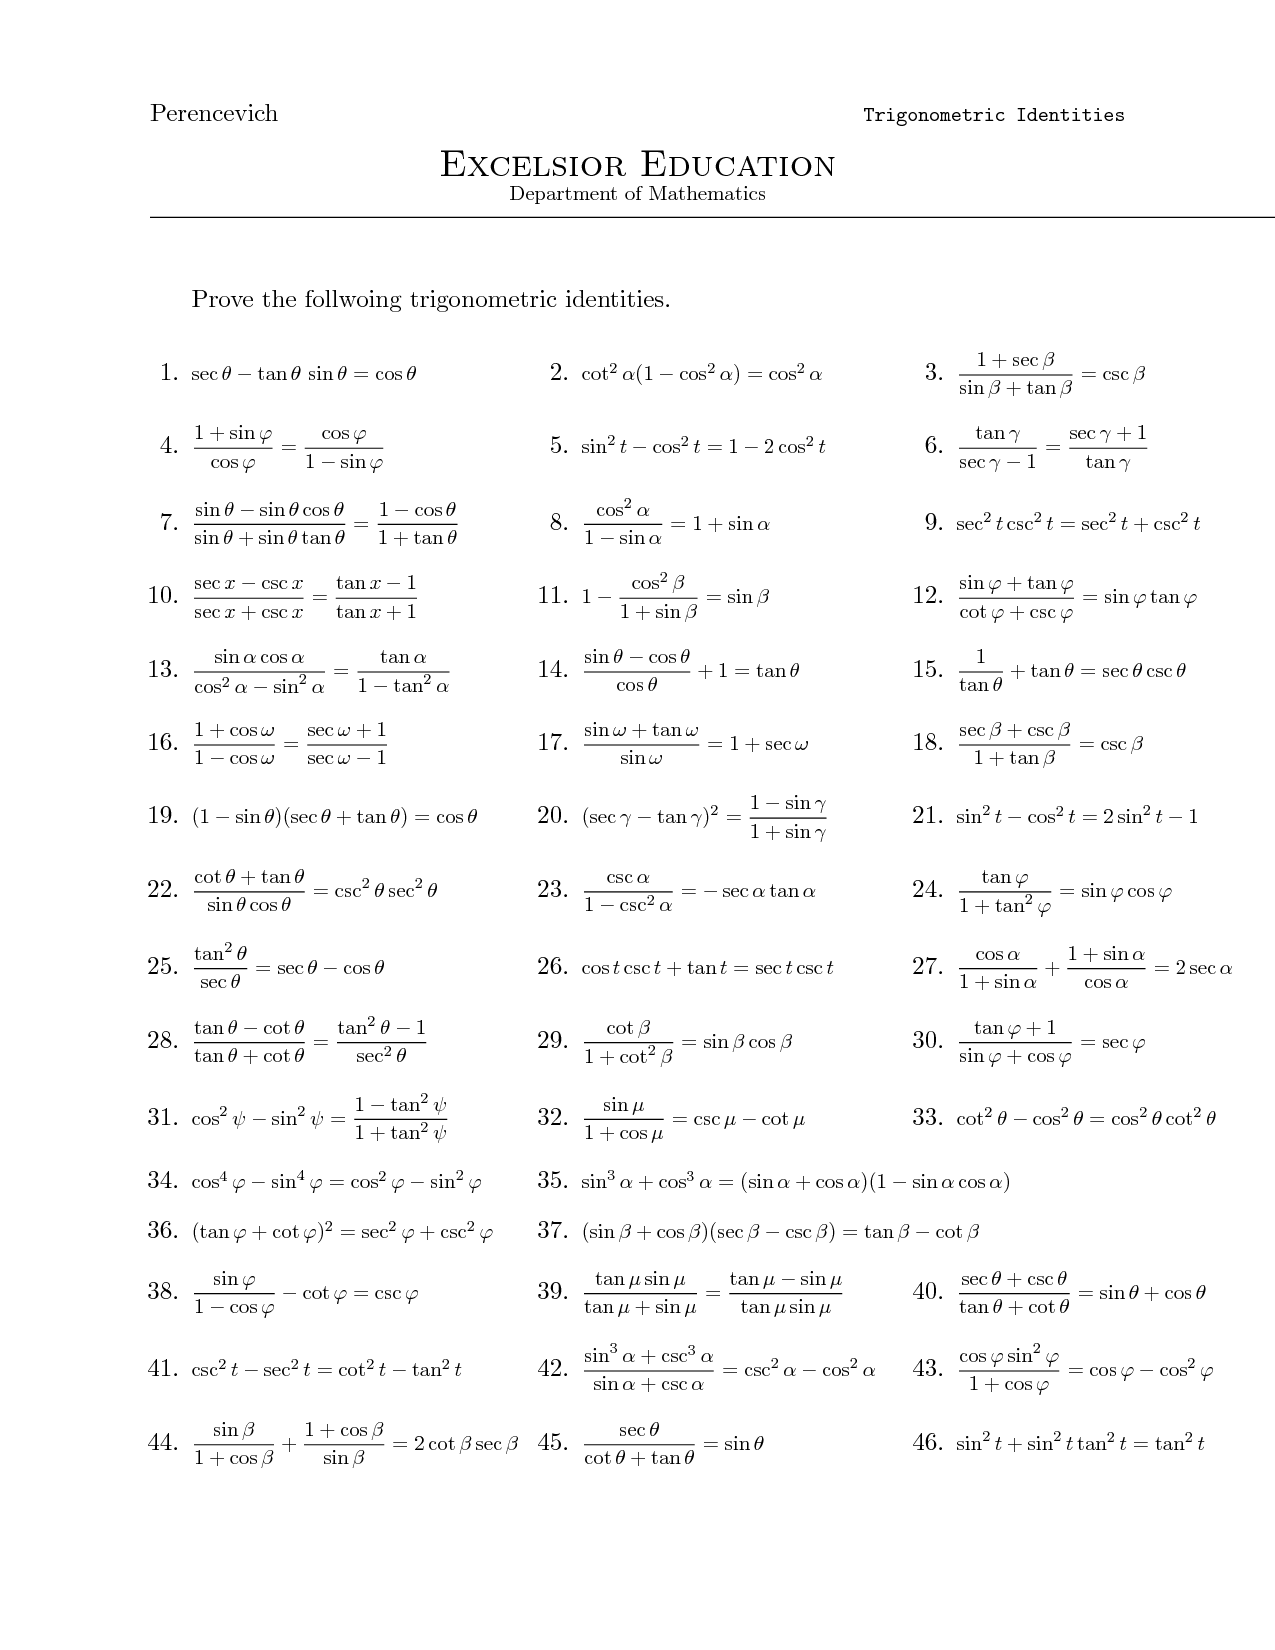 worksheet Free Trigonometry Worksheets trig identities cut ups pre calculus pinterest trigonometry identity problems